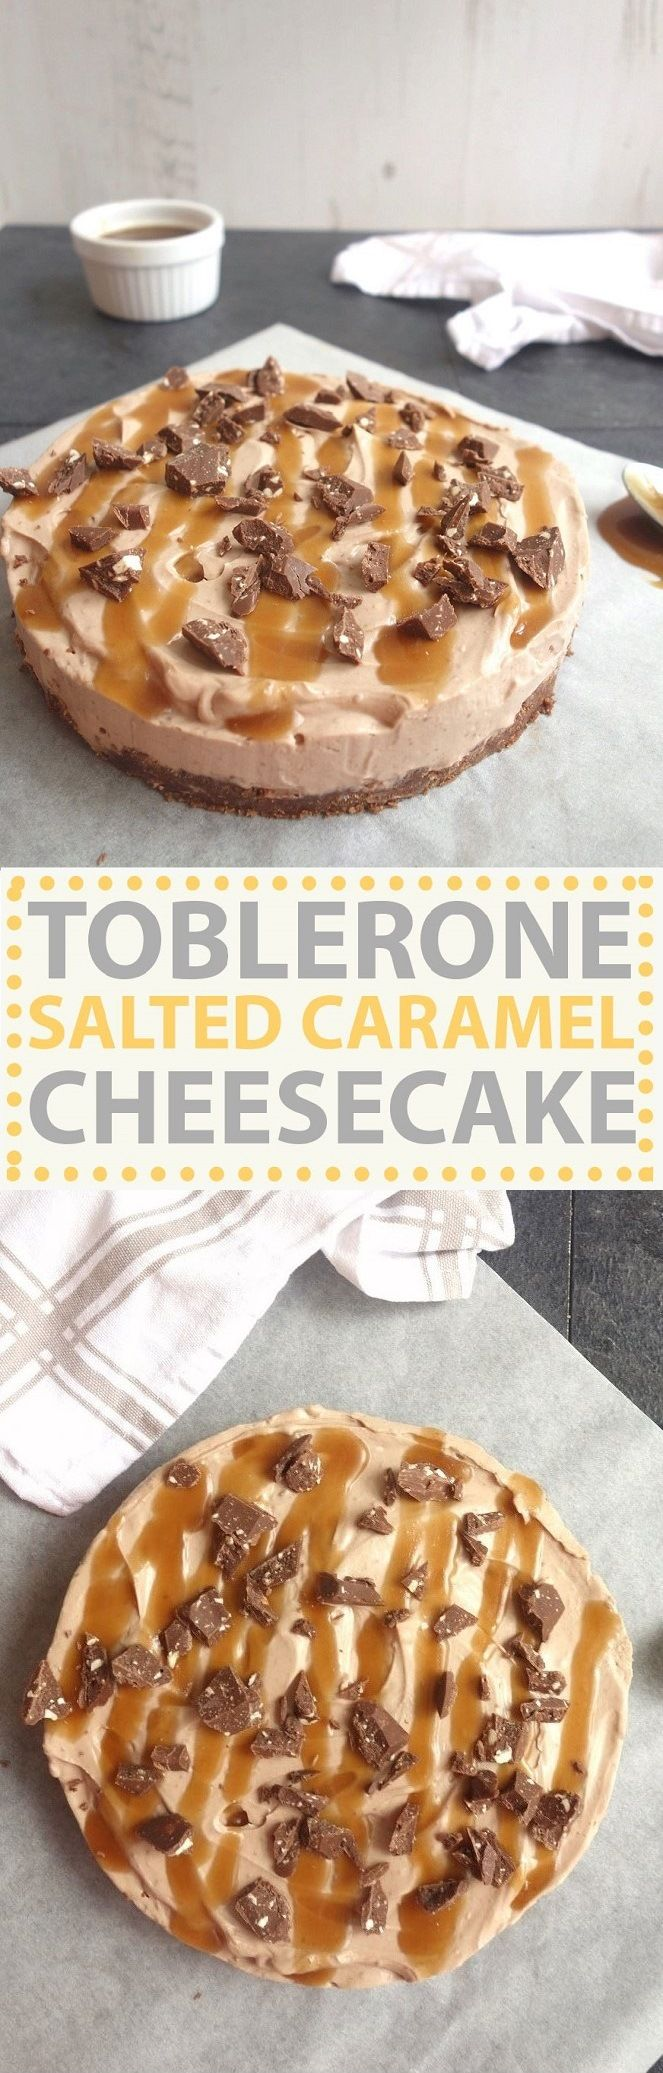 A super easy no bake cheesecake, drizzled with salted caramel sauce! #TheBeautyAddict